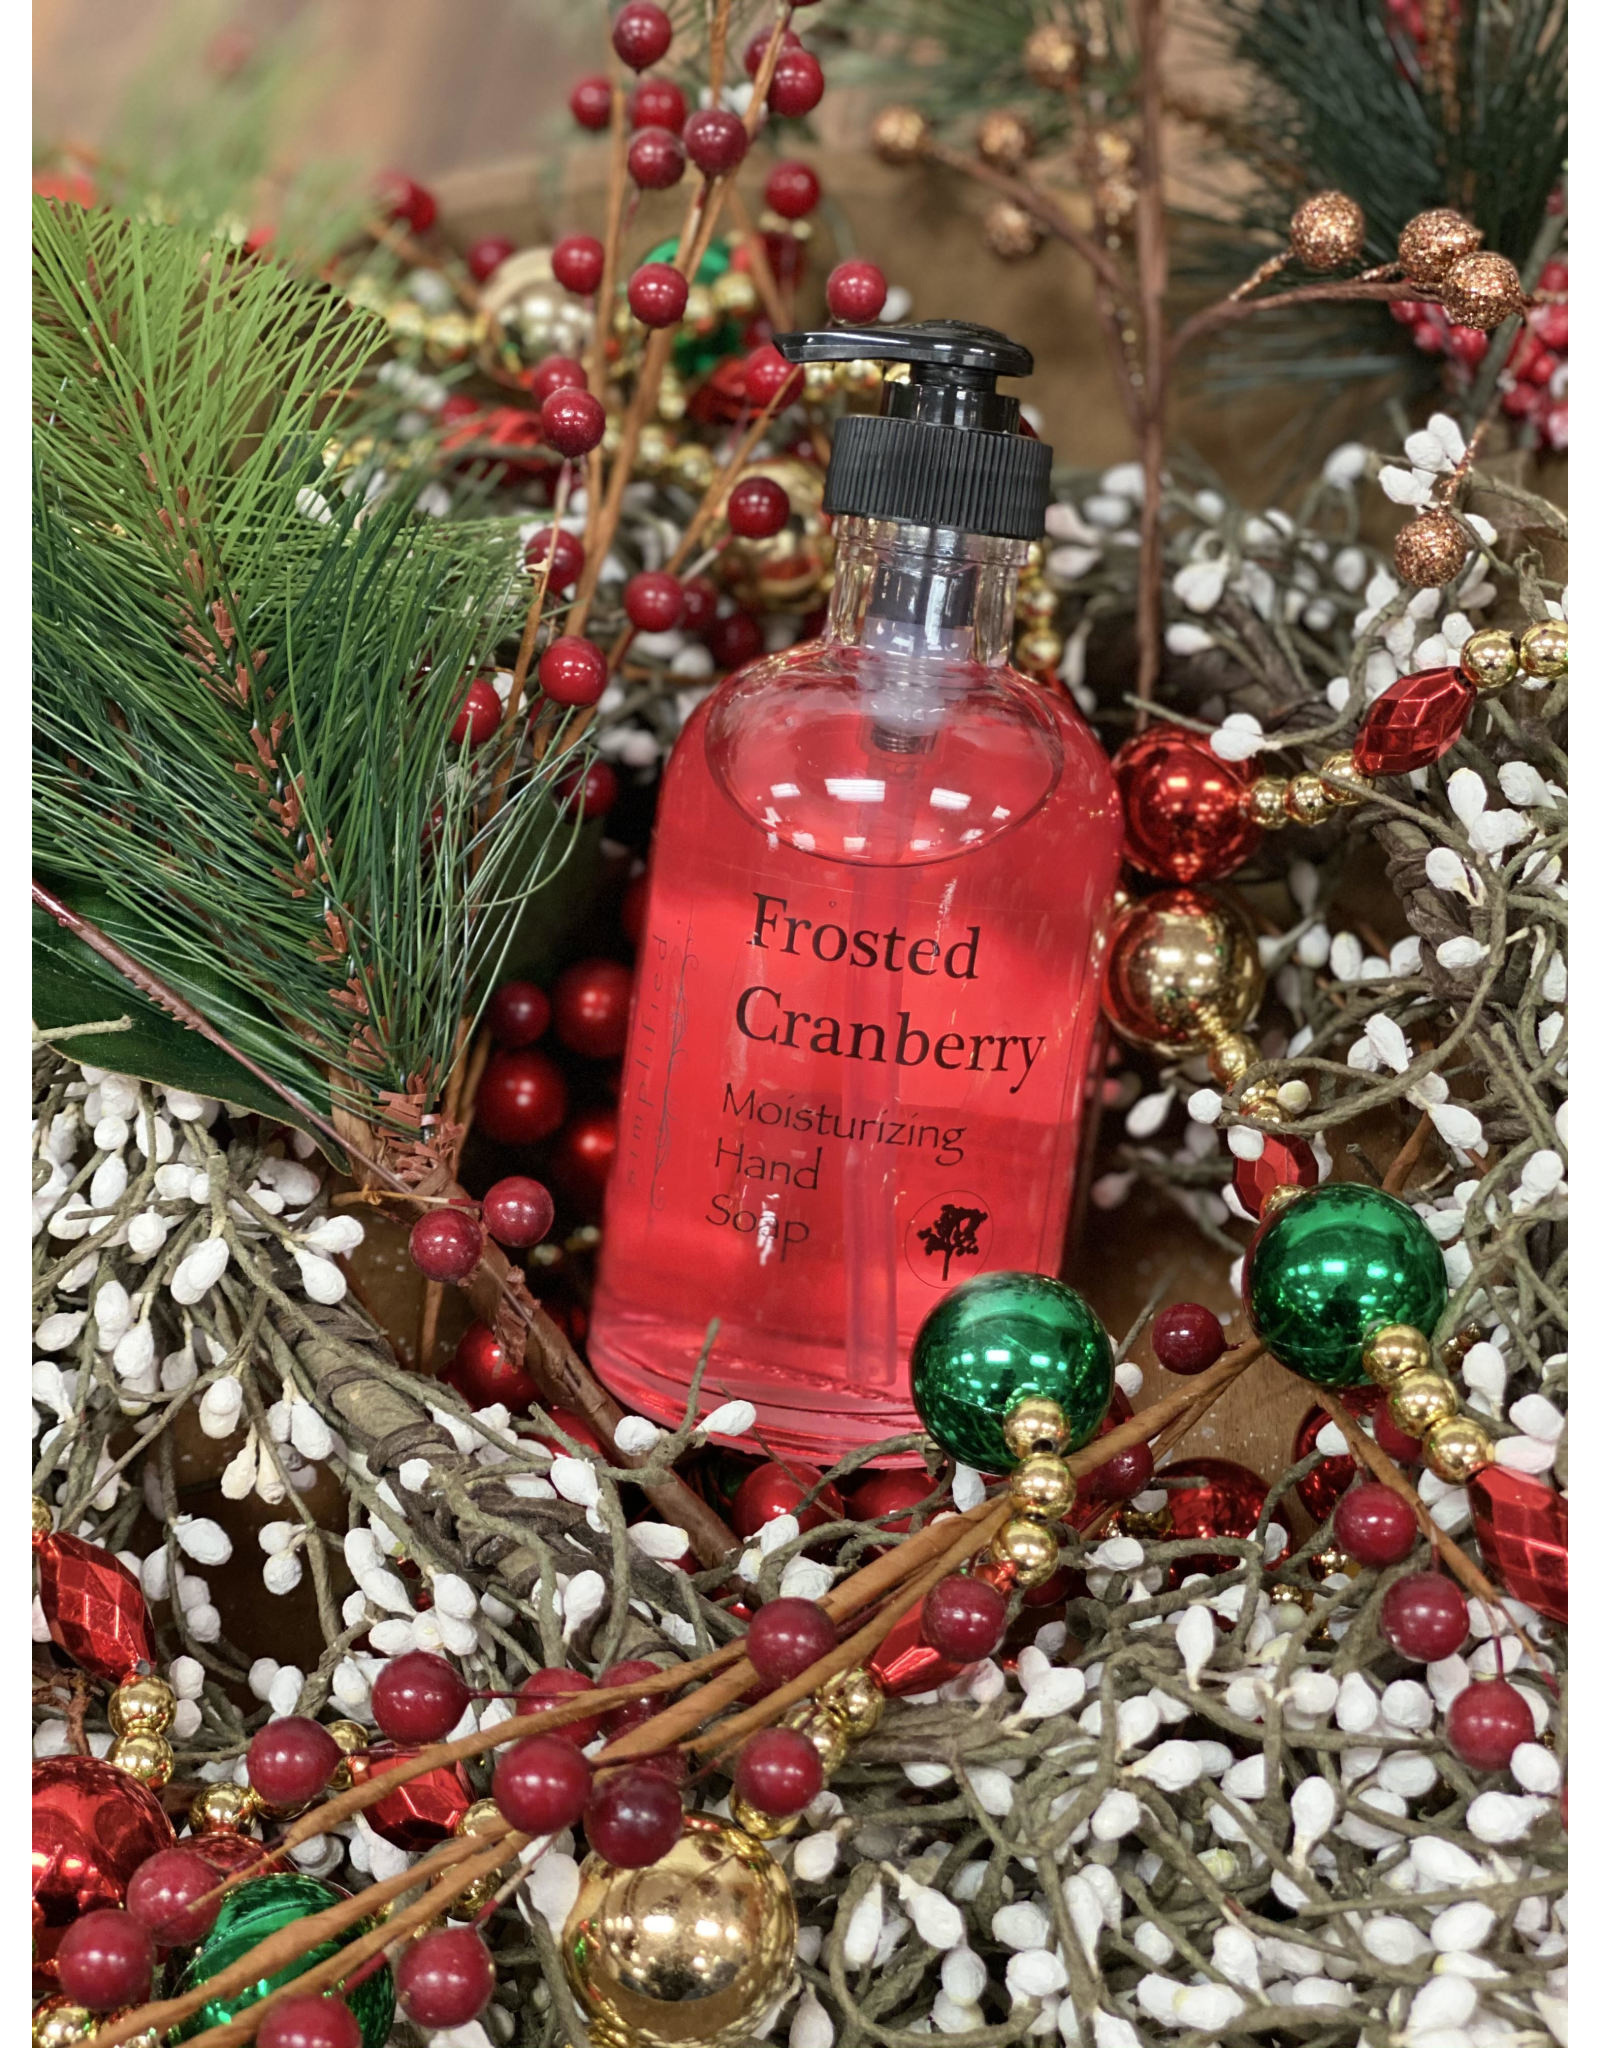 Frosted Cranberry 8oz Hand Soap